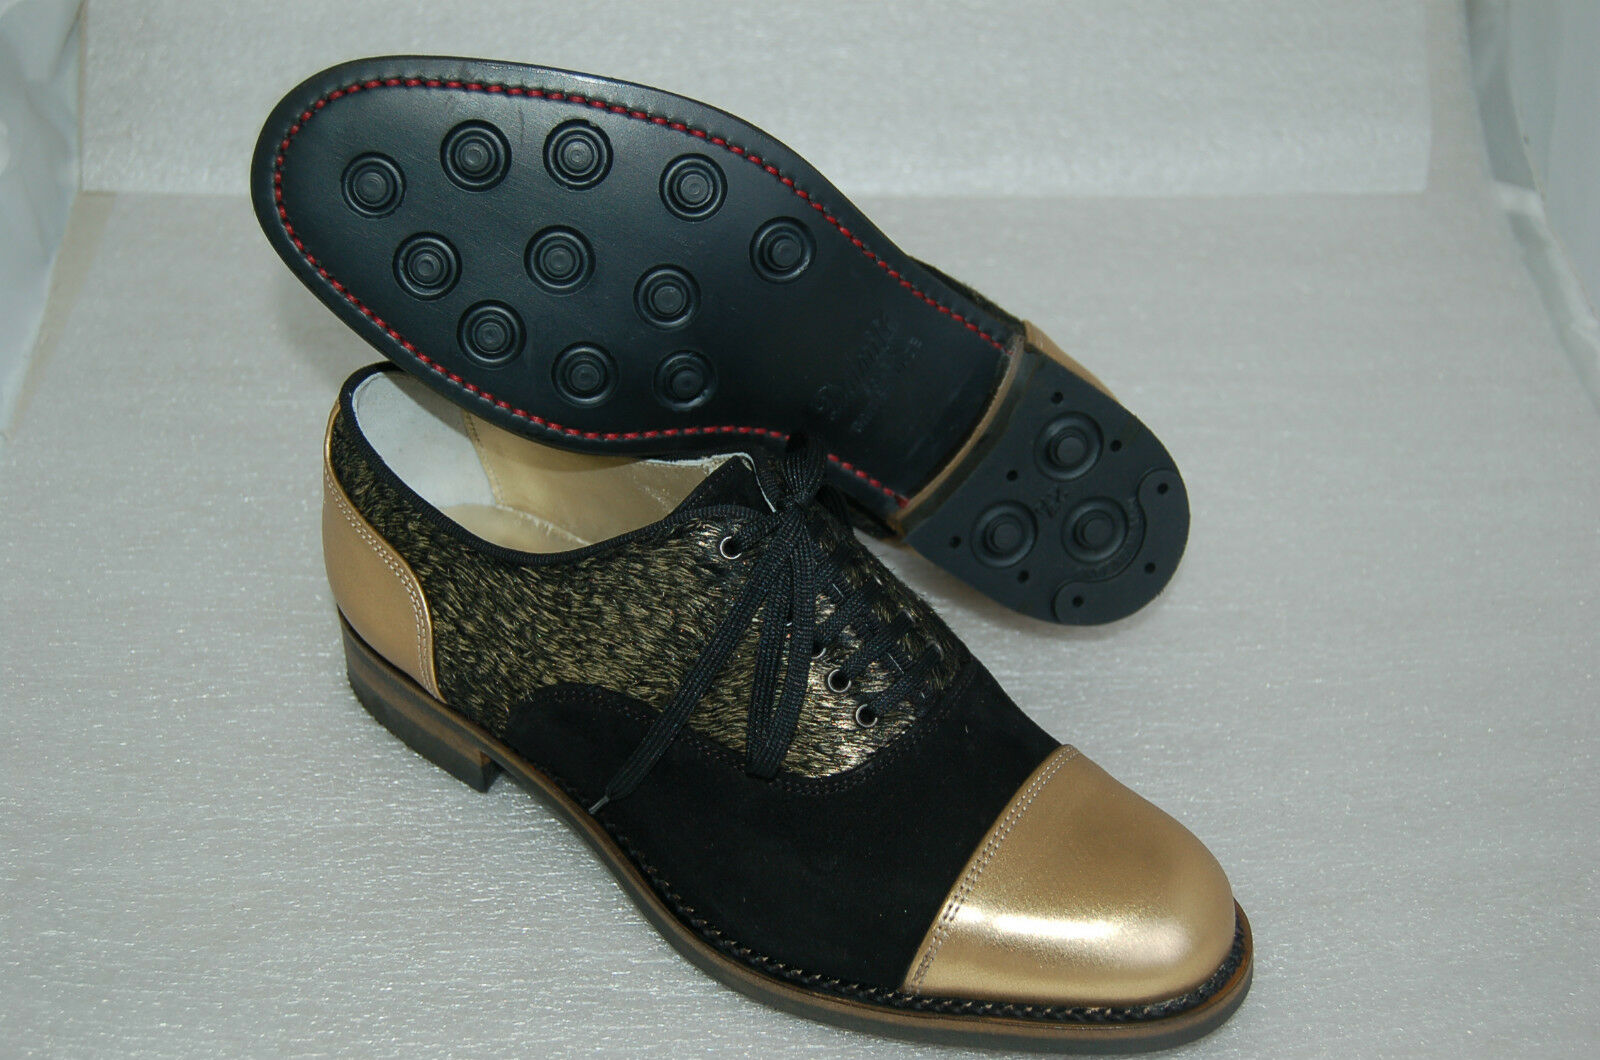 WOMAN CAPTOE OXFORD PONY- -39 eu - GOLD CALF/BLK SUEDE/LAMINATE PONY- OXFORD LTH SOLE+DAINITE 489942